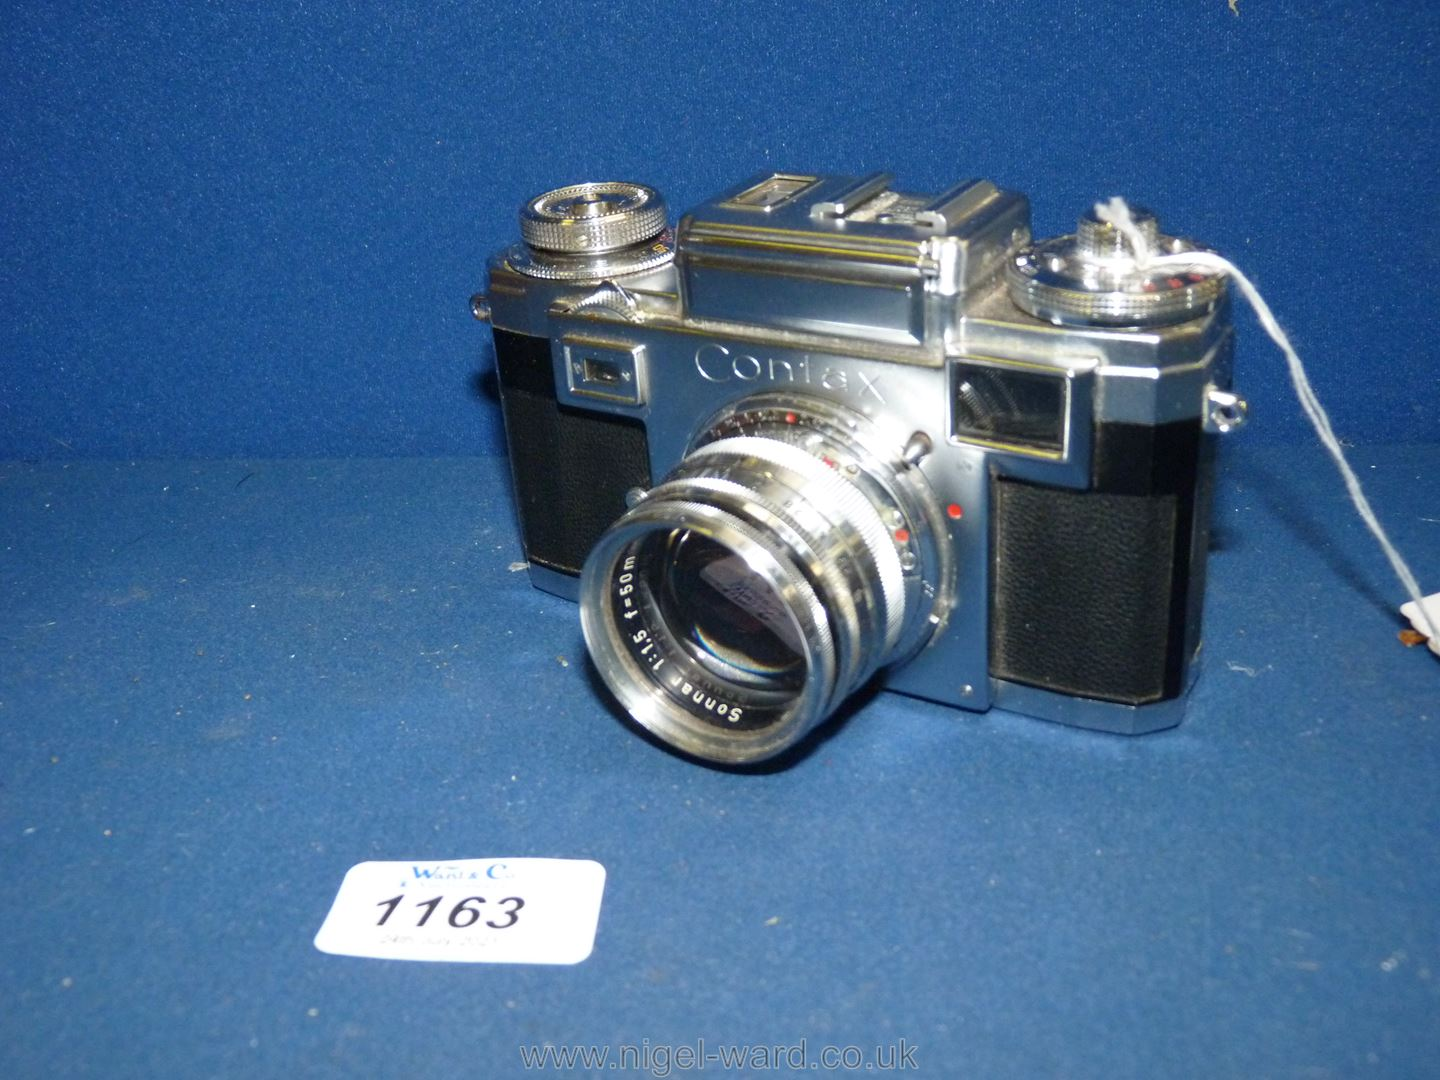 A Circa 1950's - 60's Zeiss Ikon Stuttgart Contax IIIa 35mm Range Finder Camera with a Carl Zeiss - Image 18 of 18